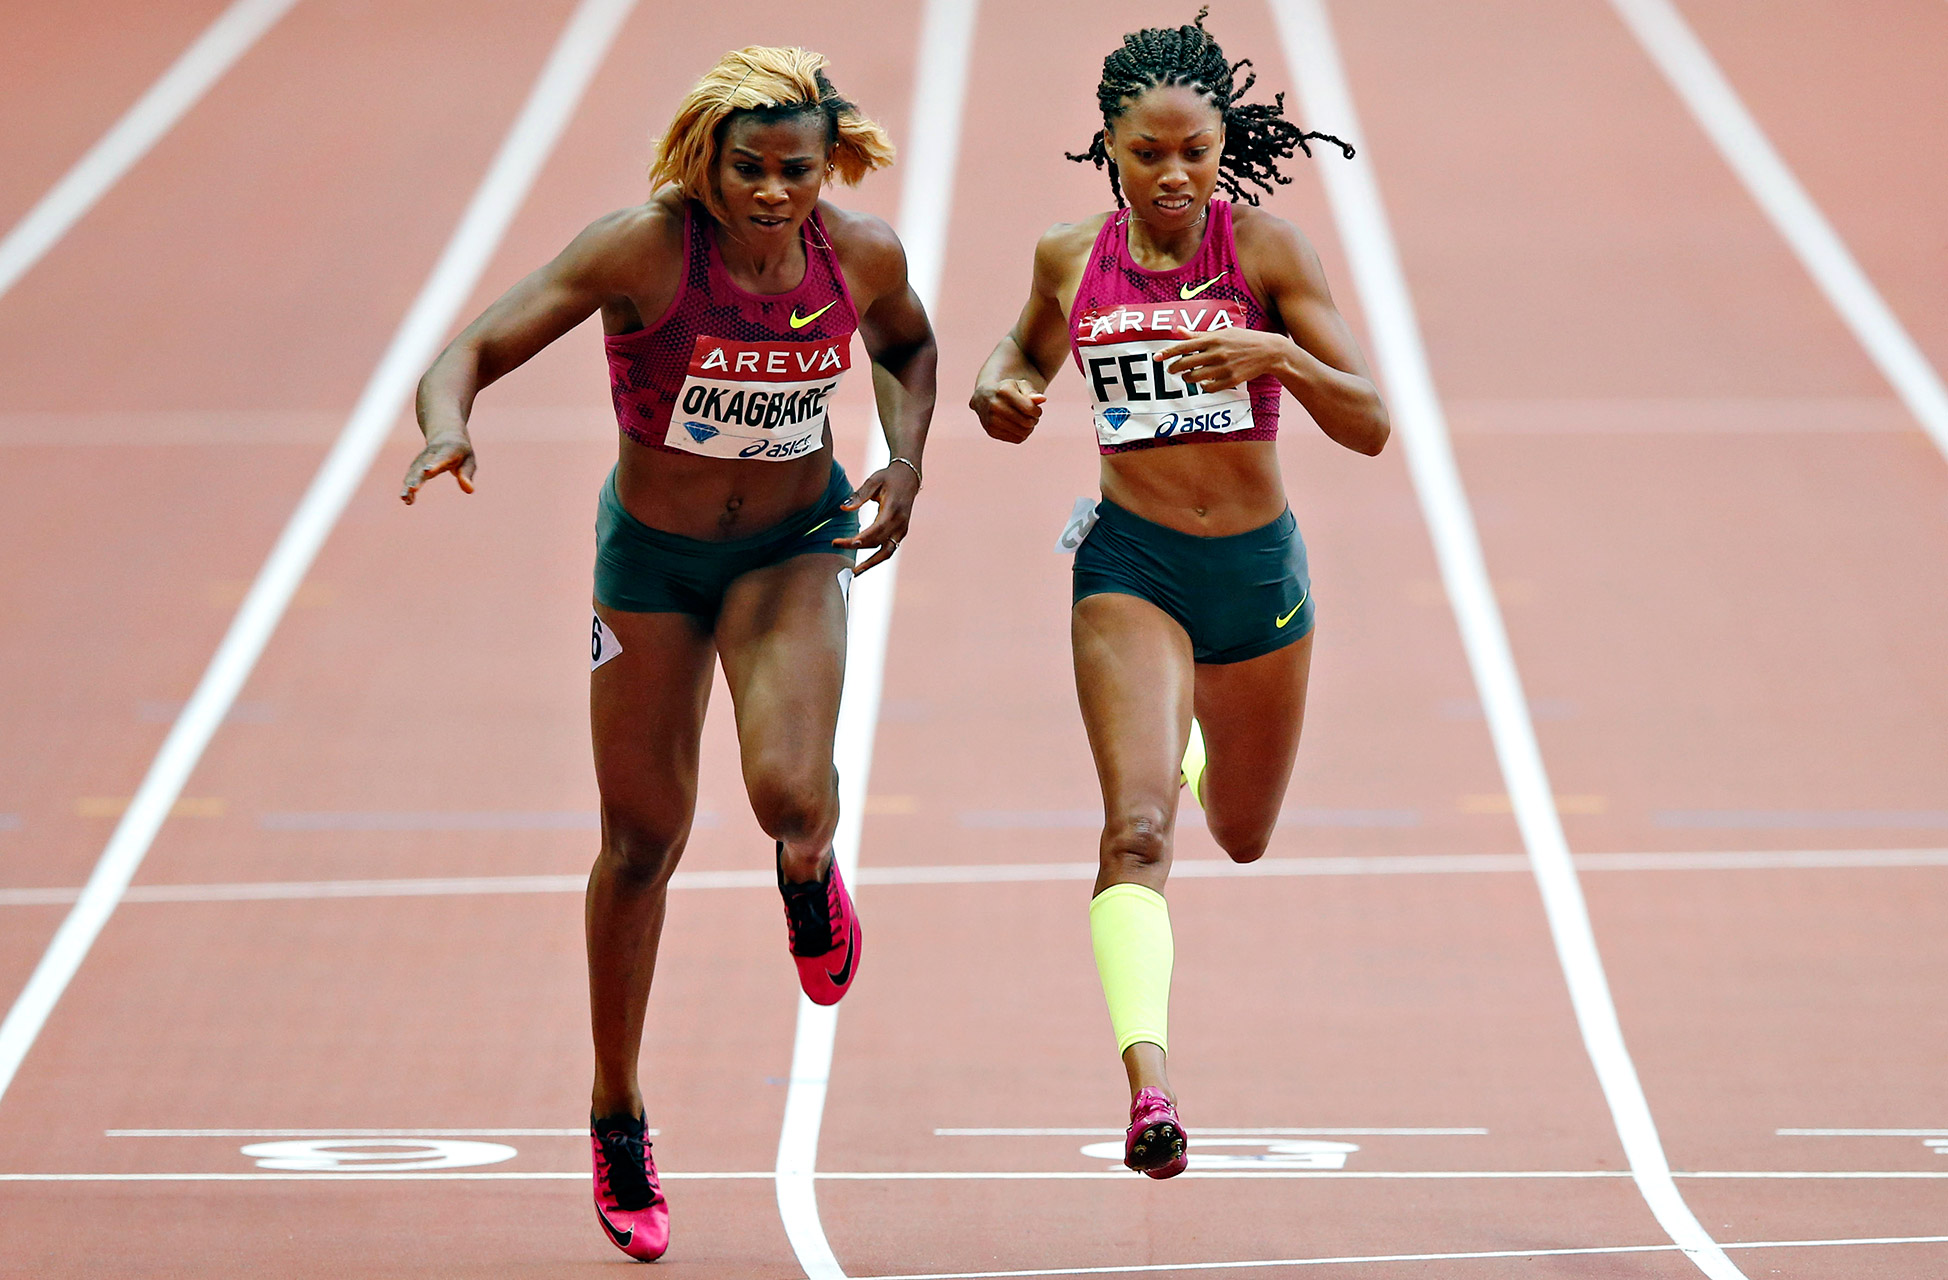 Nigeria's Blessing Okagbare, left, crosses the finish line to win the 200-meter race ahead of American Allyson Felix during the Diamond League meeting at Stade de France stadium, in Saint Denis, north of Paris.